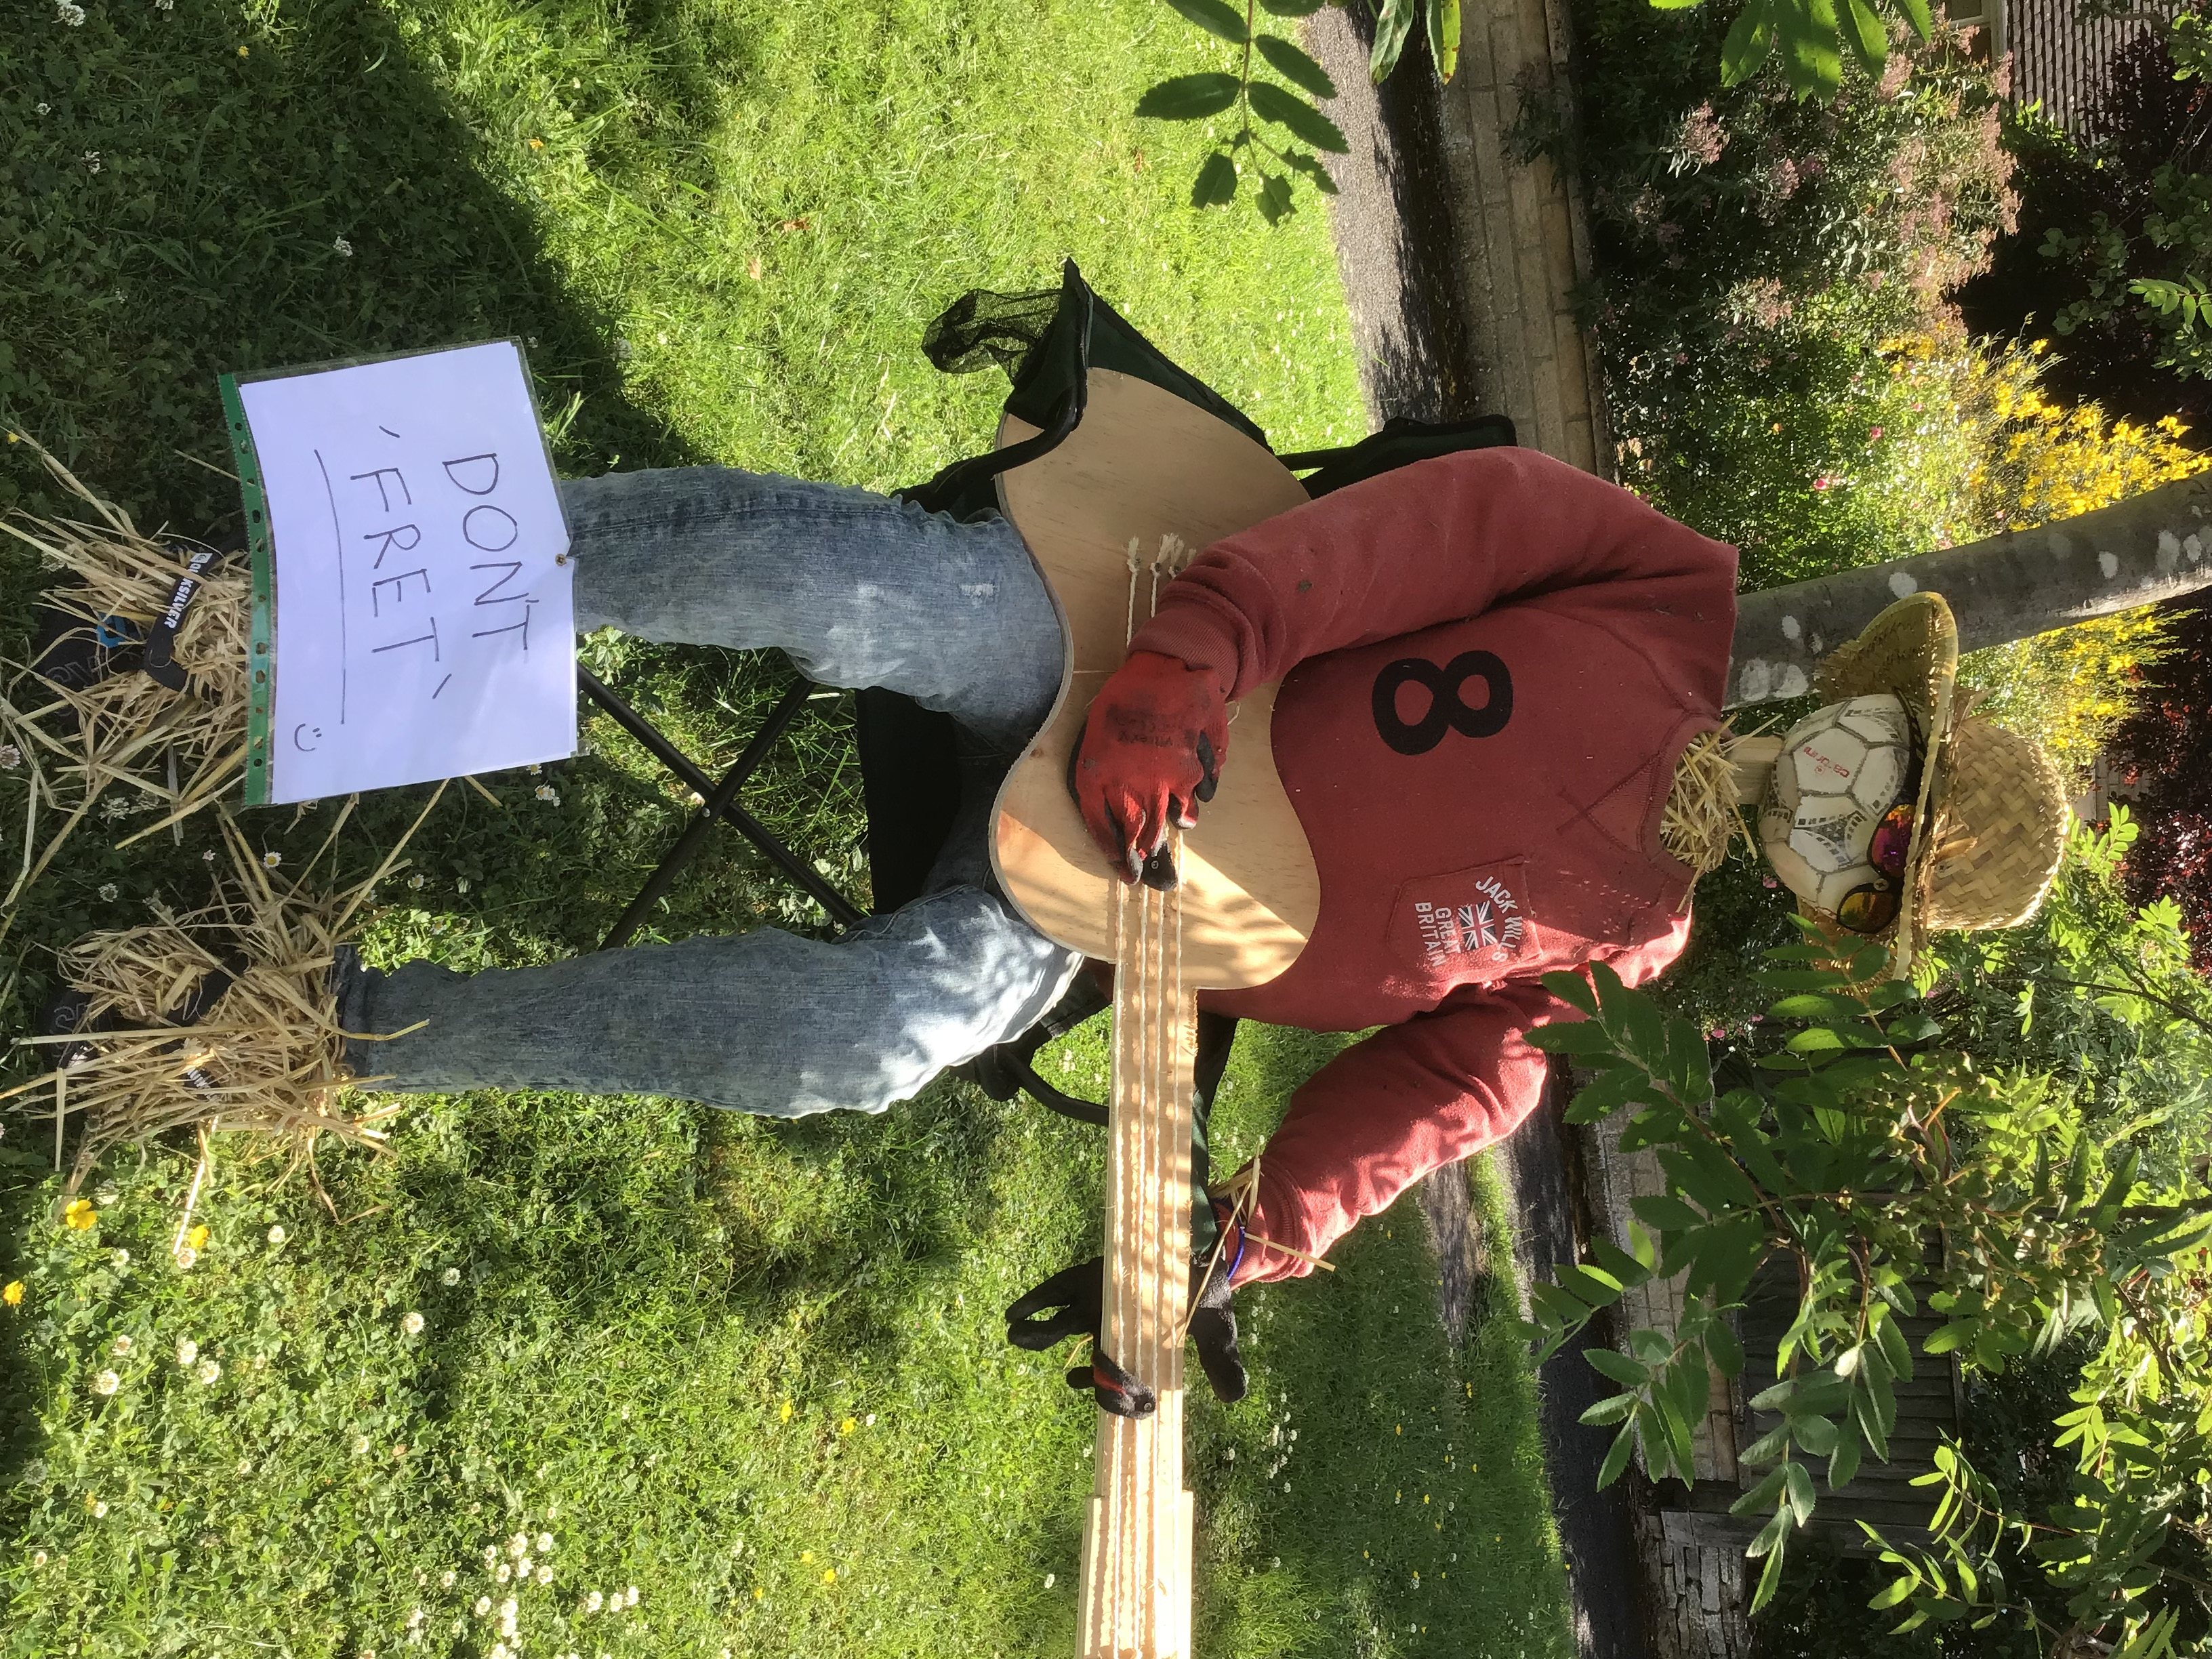 Willersey Scarecrow 10 2021